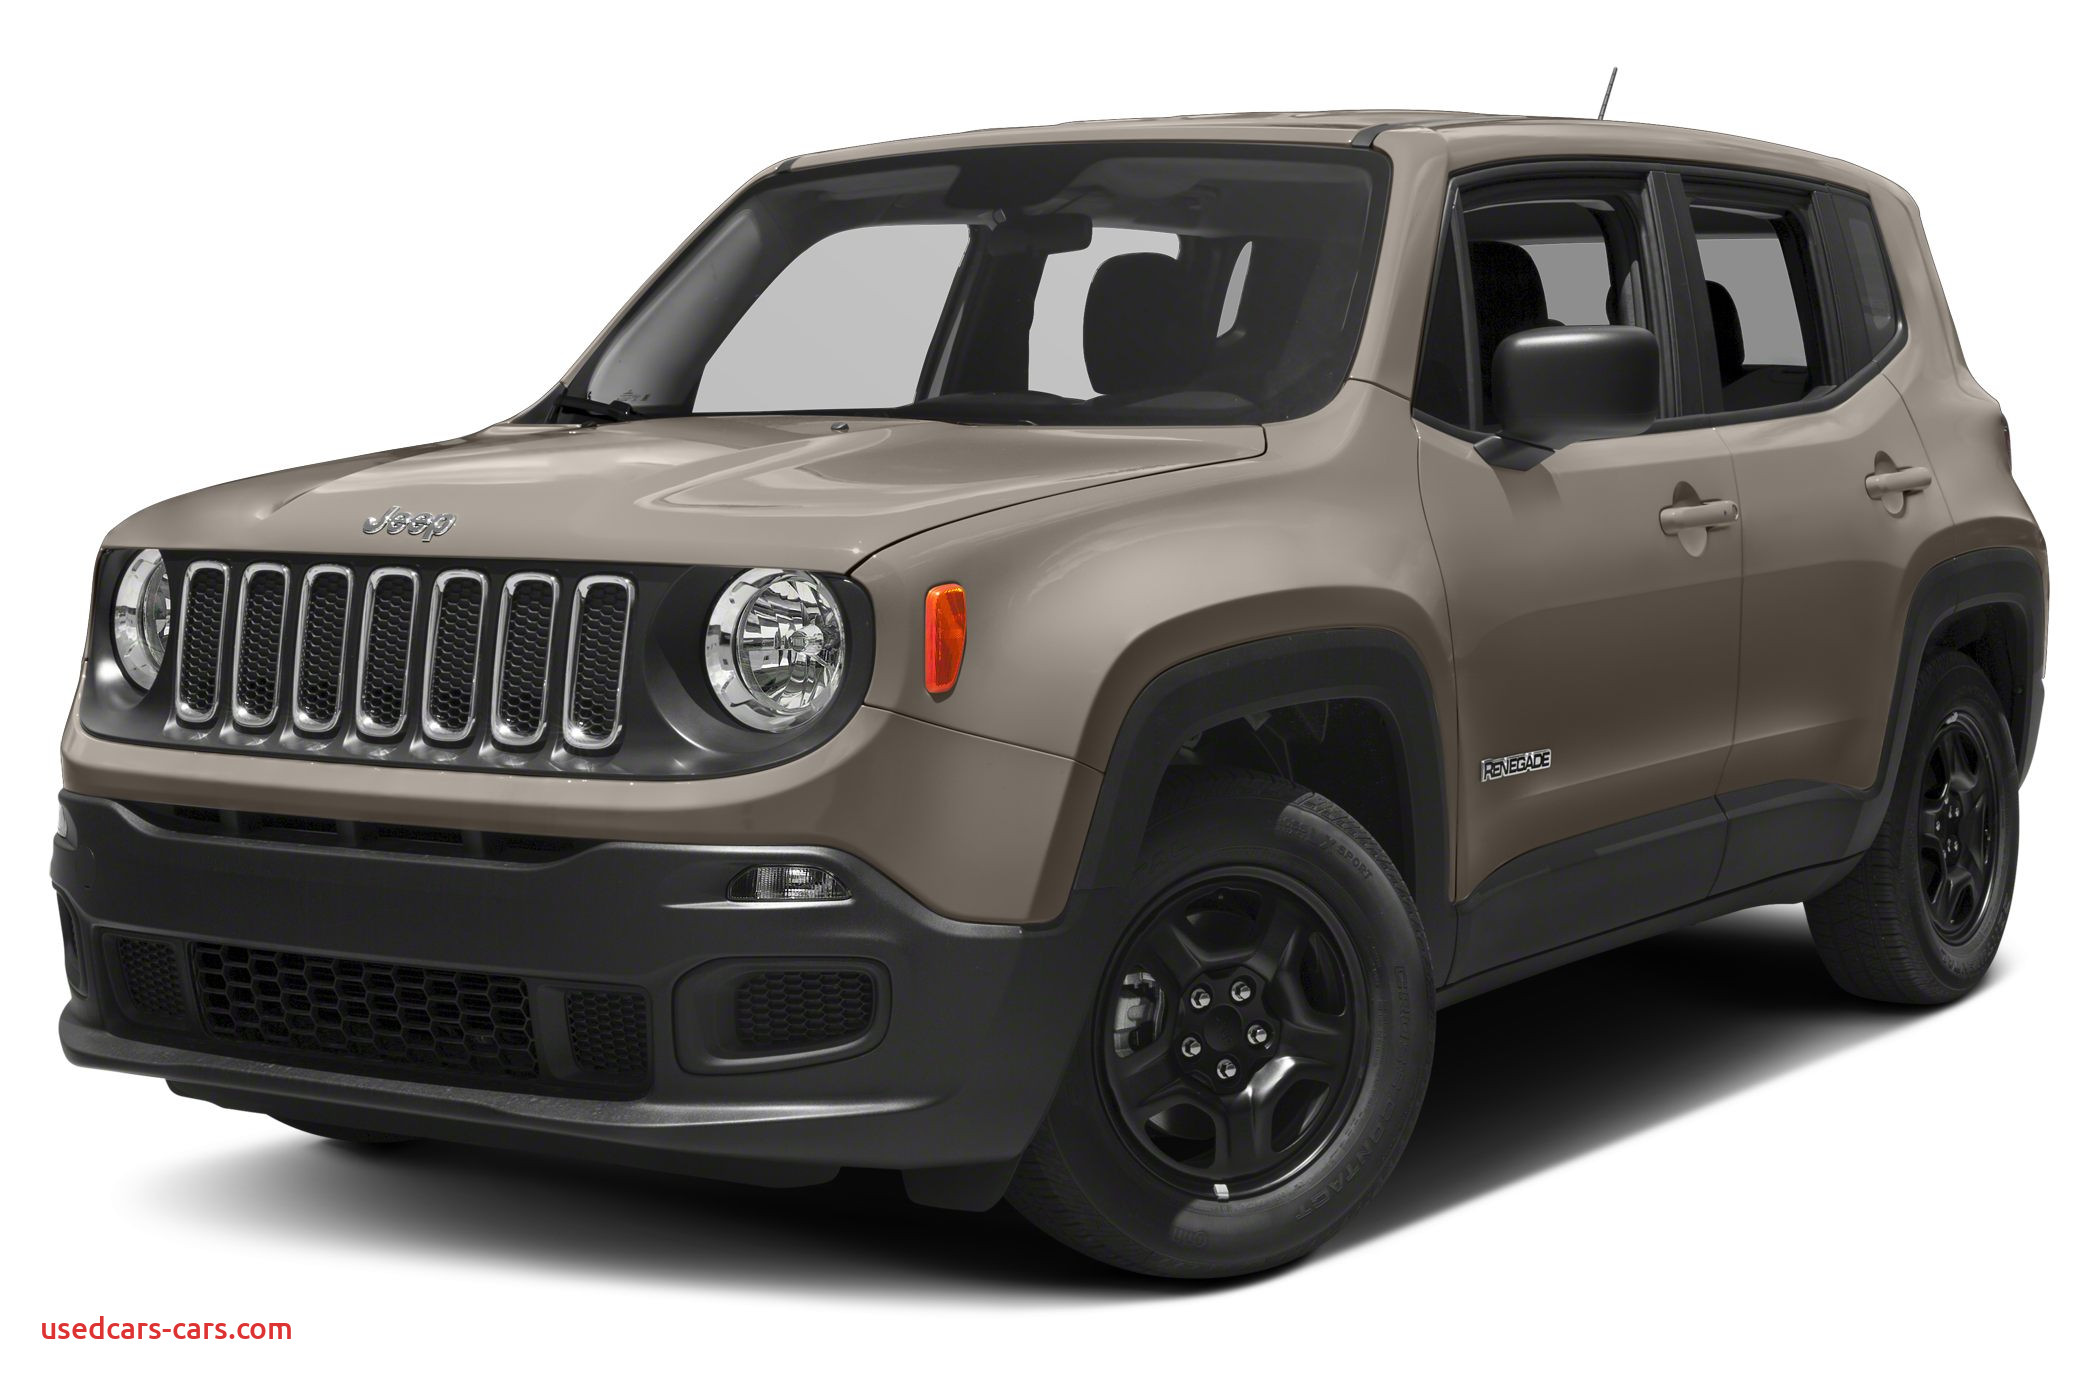 Top Rated Suv 2015 Lovely 2015 Jeep Renegade Owner Reviews and Ratings